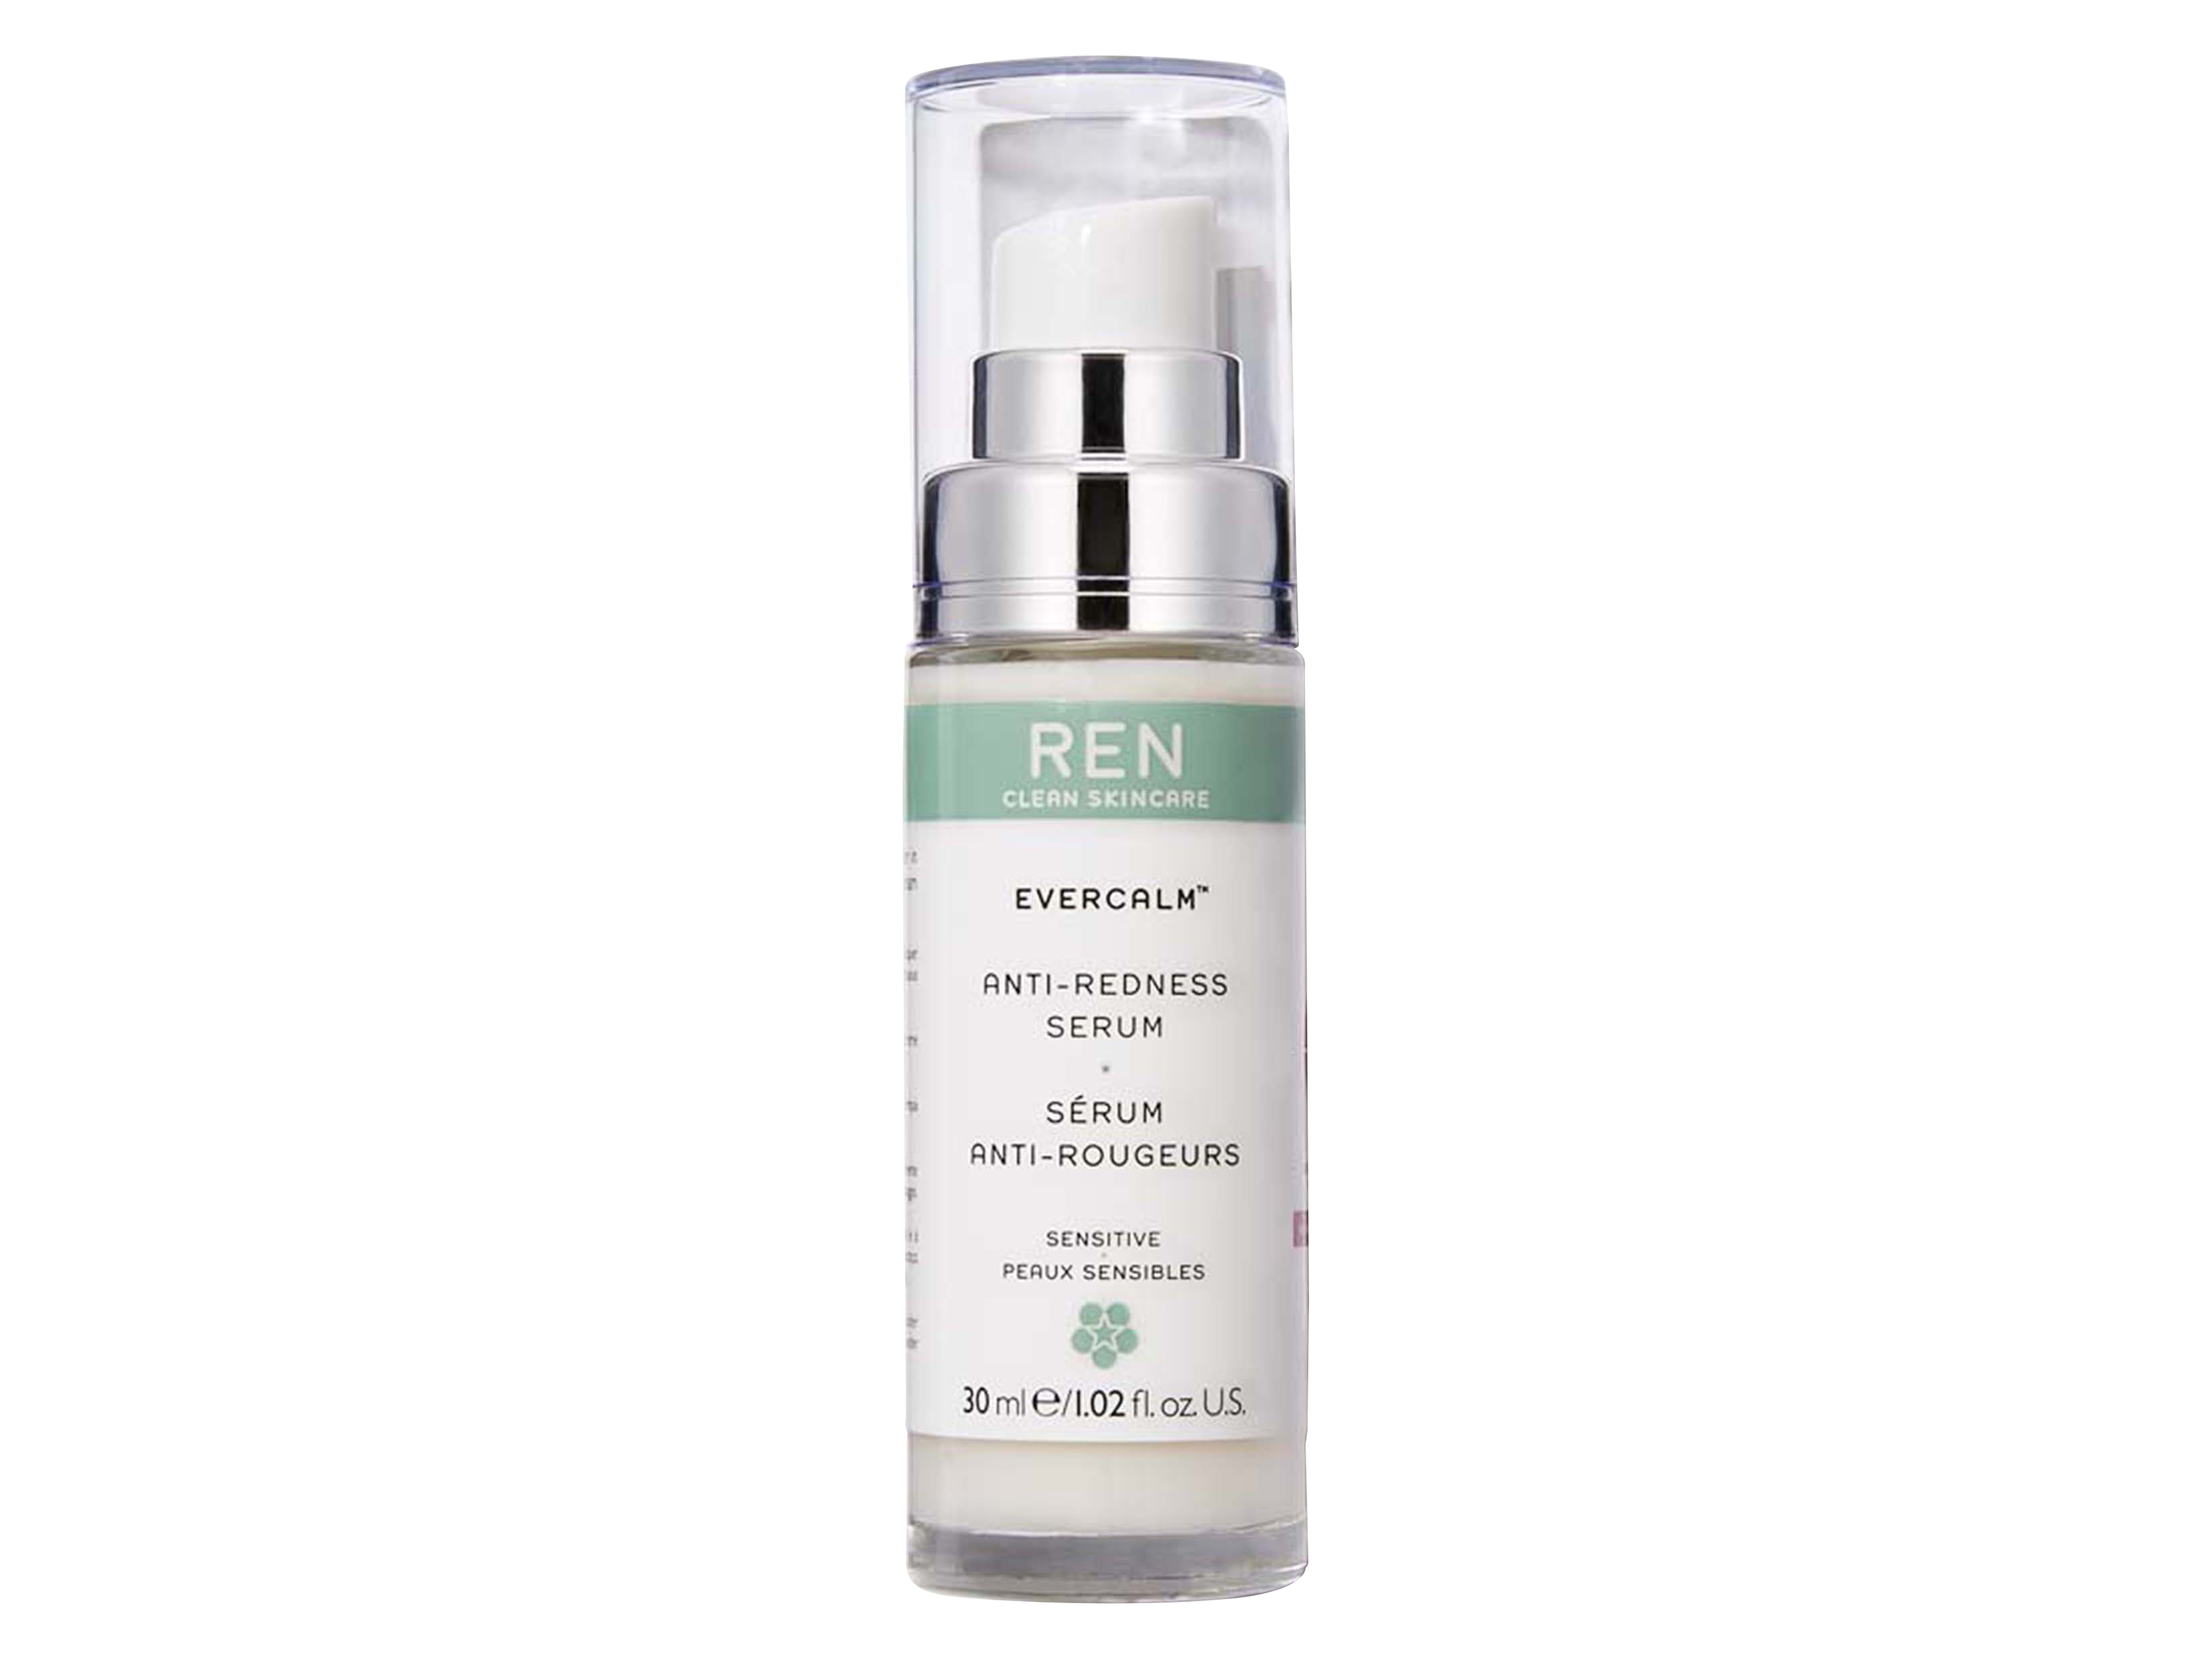 REN Evercalm Anti-Redness Serum, 30 ml